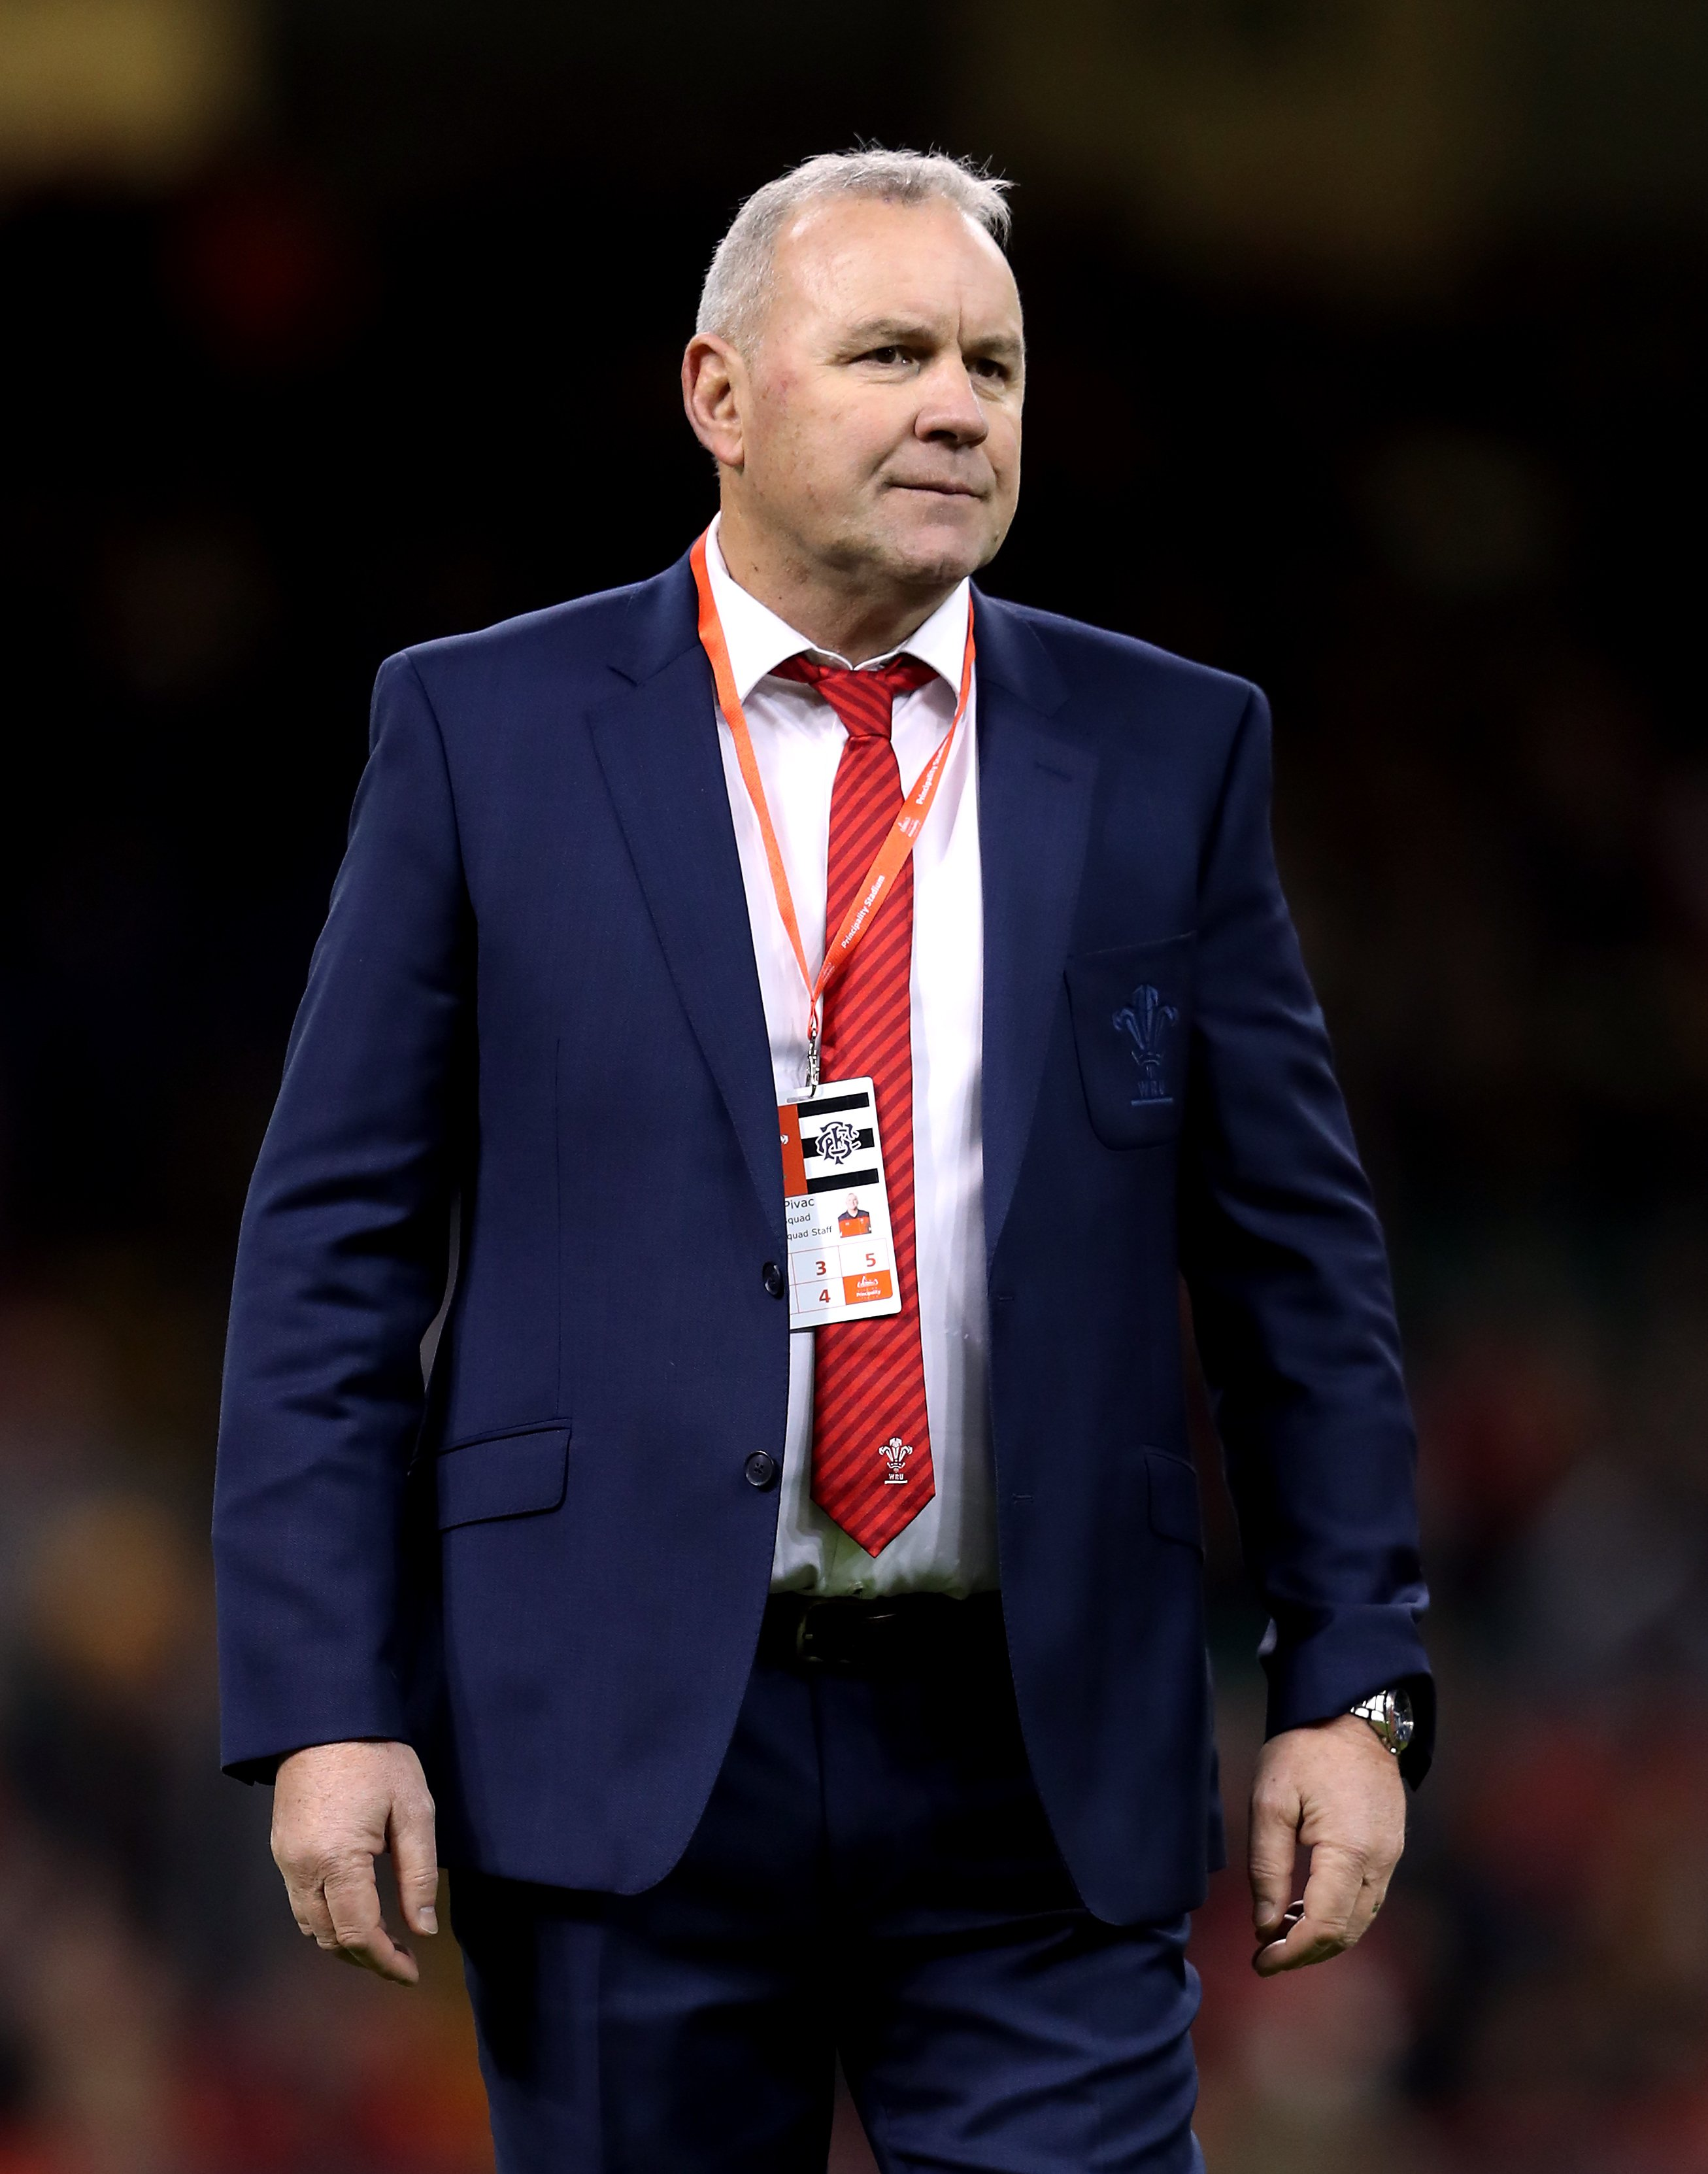 Wales will 'box on' after squad hit by injuries and suspensions – Wayne Pivac